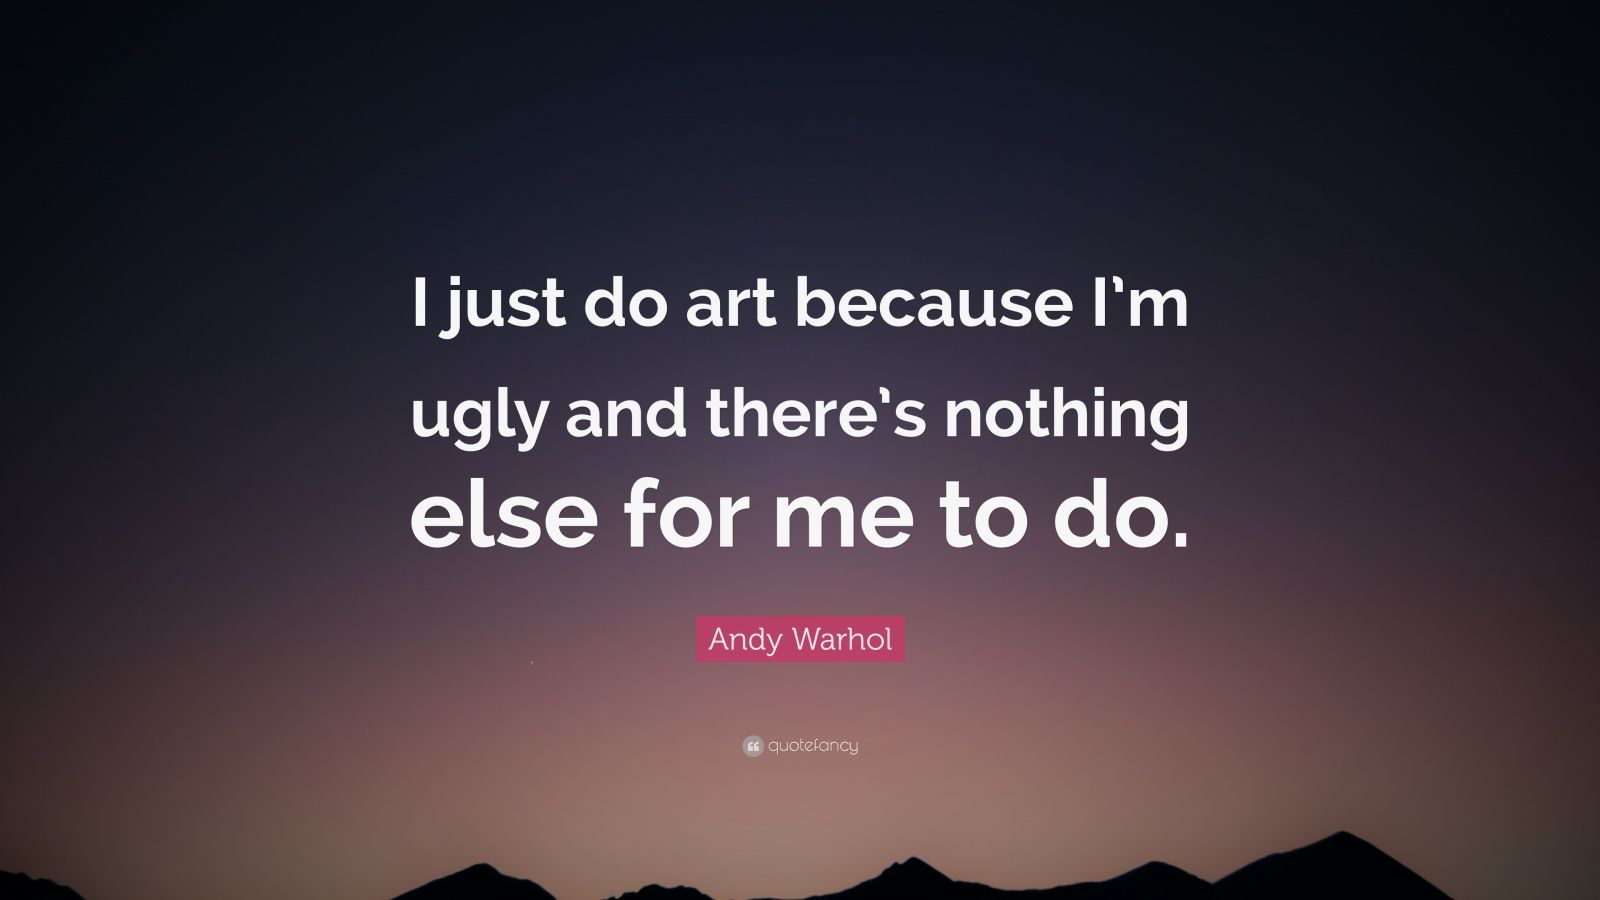 Andy Warhol Quotes Awesome Andy Warhol Quotes 100 Wallpapers  Quotefancy